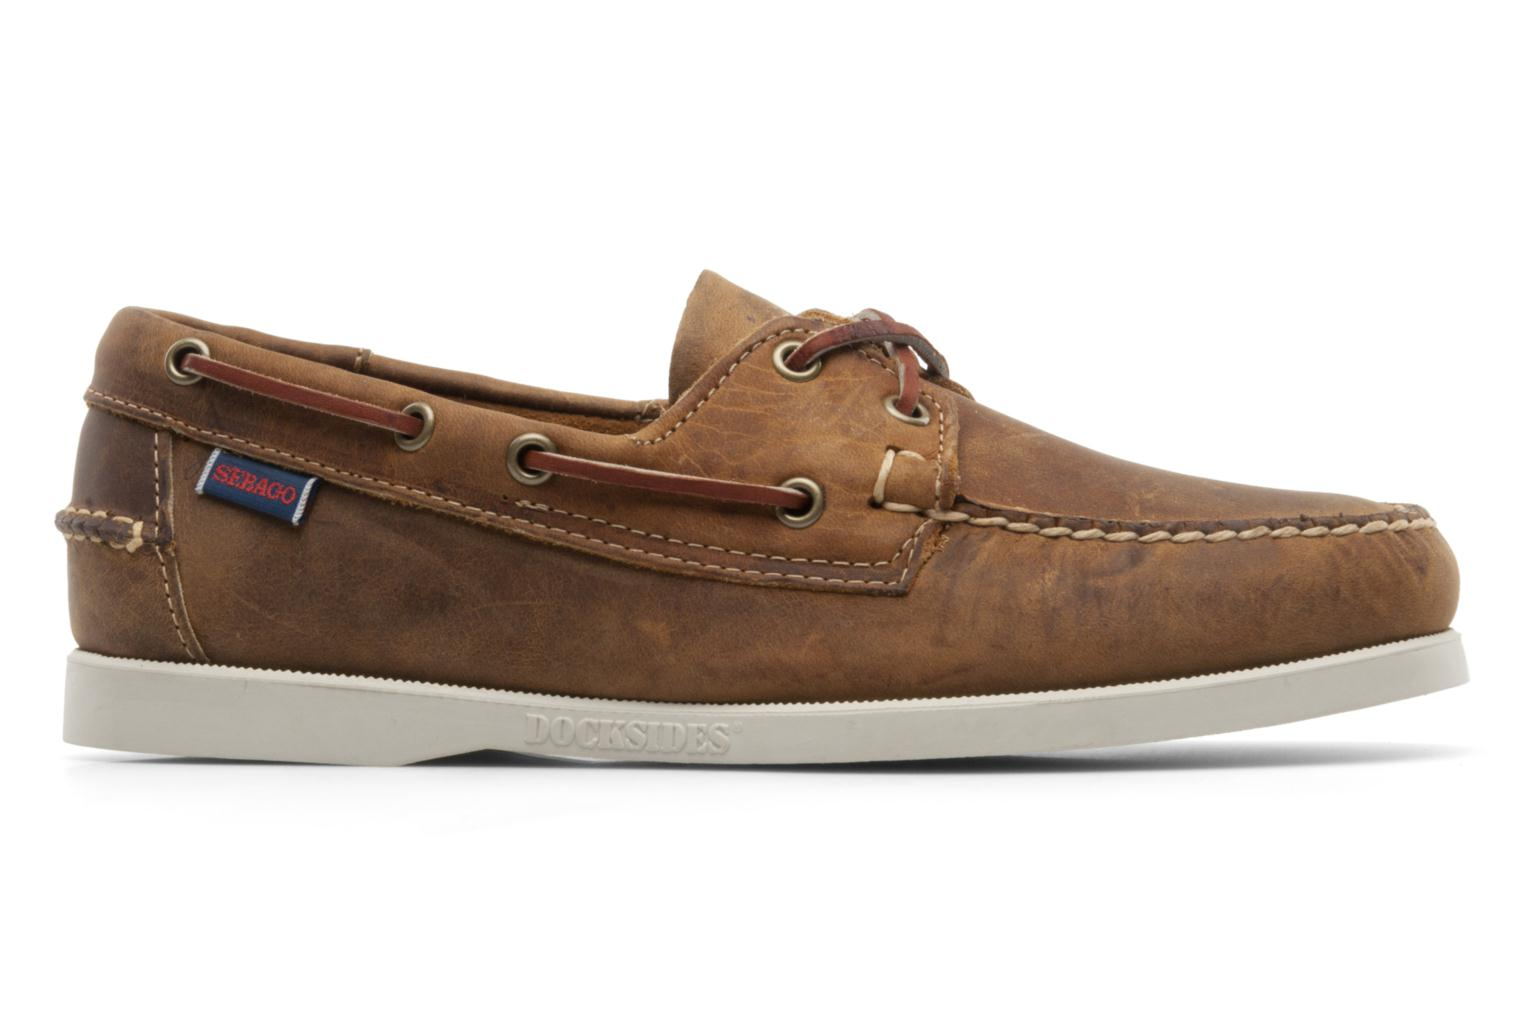 Docksides M Brown White O Sole